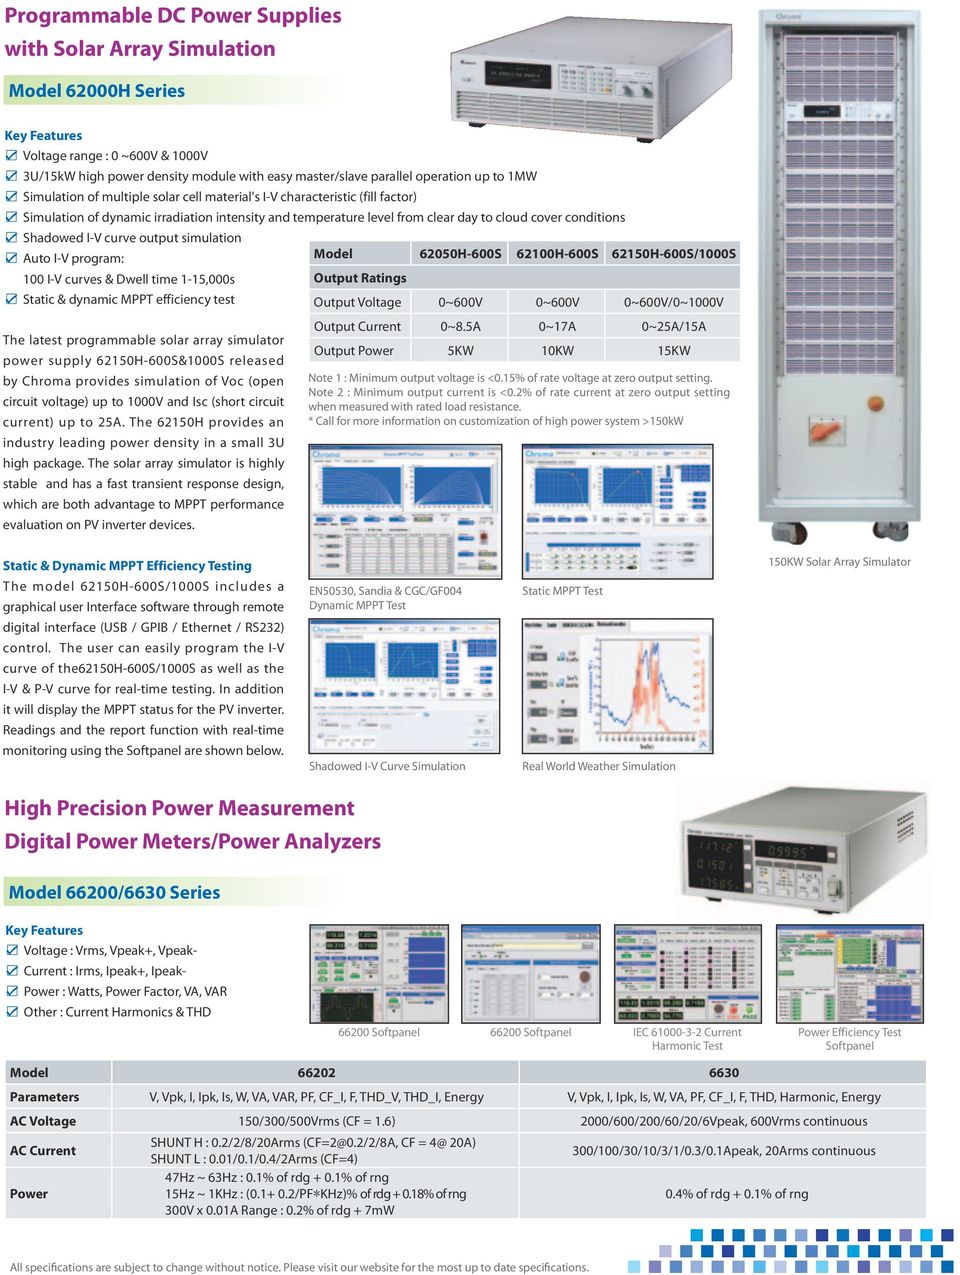 Shadowed I-V curve output simulation Auto I-V program: 100 I-V curves & Dwell time 1-15,000s Static & dynamic MPPT efficiency test The latest programmable solar array simulator power supply